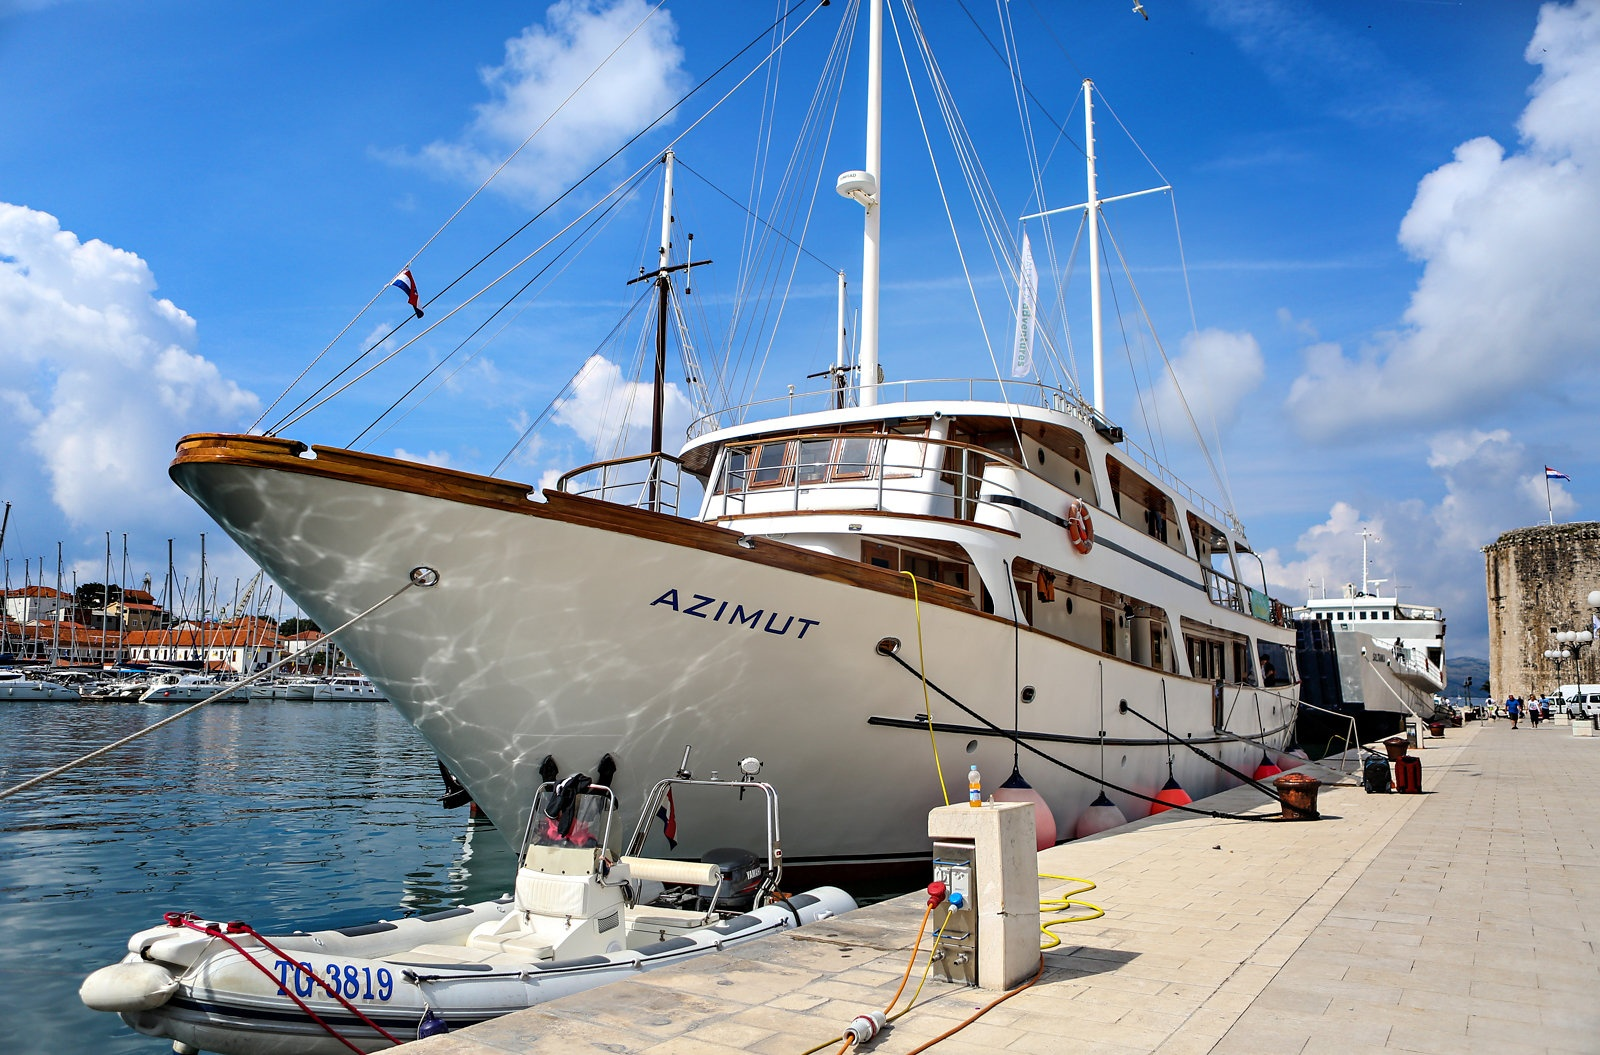 Cycling and sailing Croatia on the Azimut